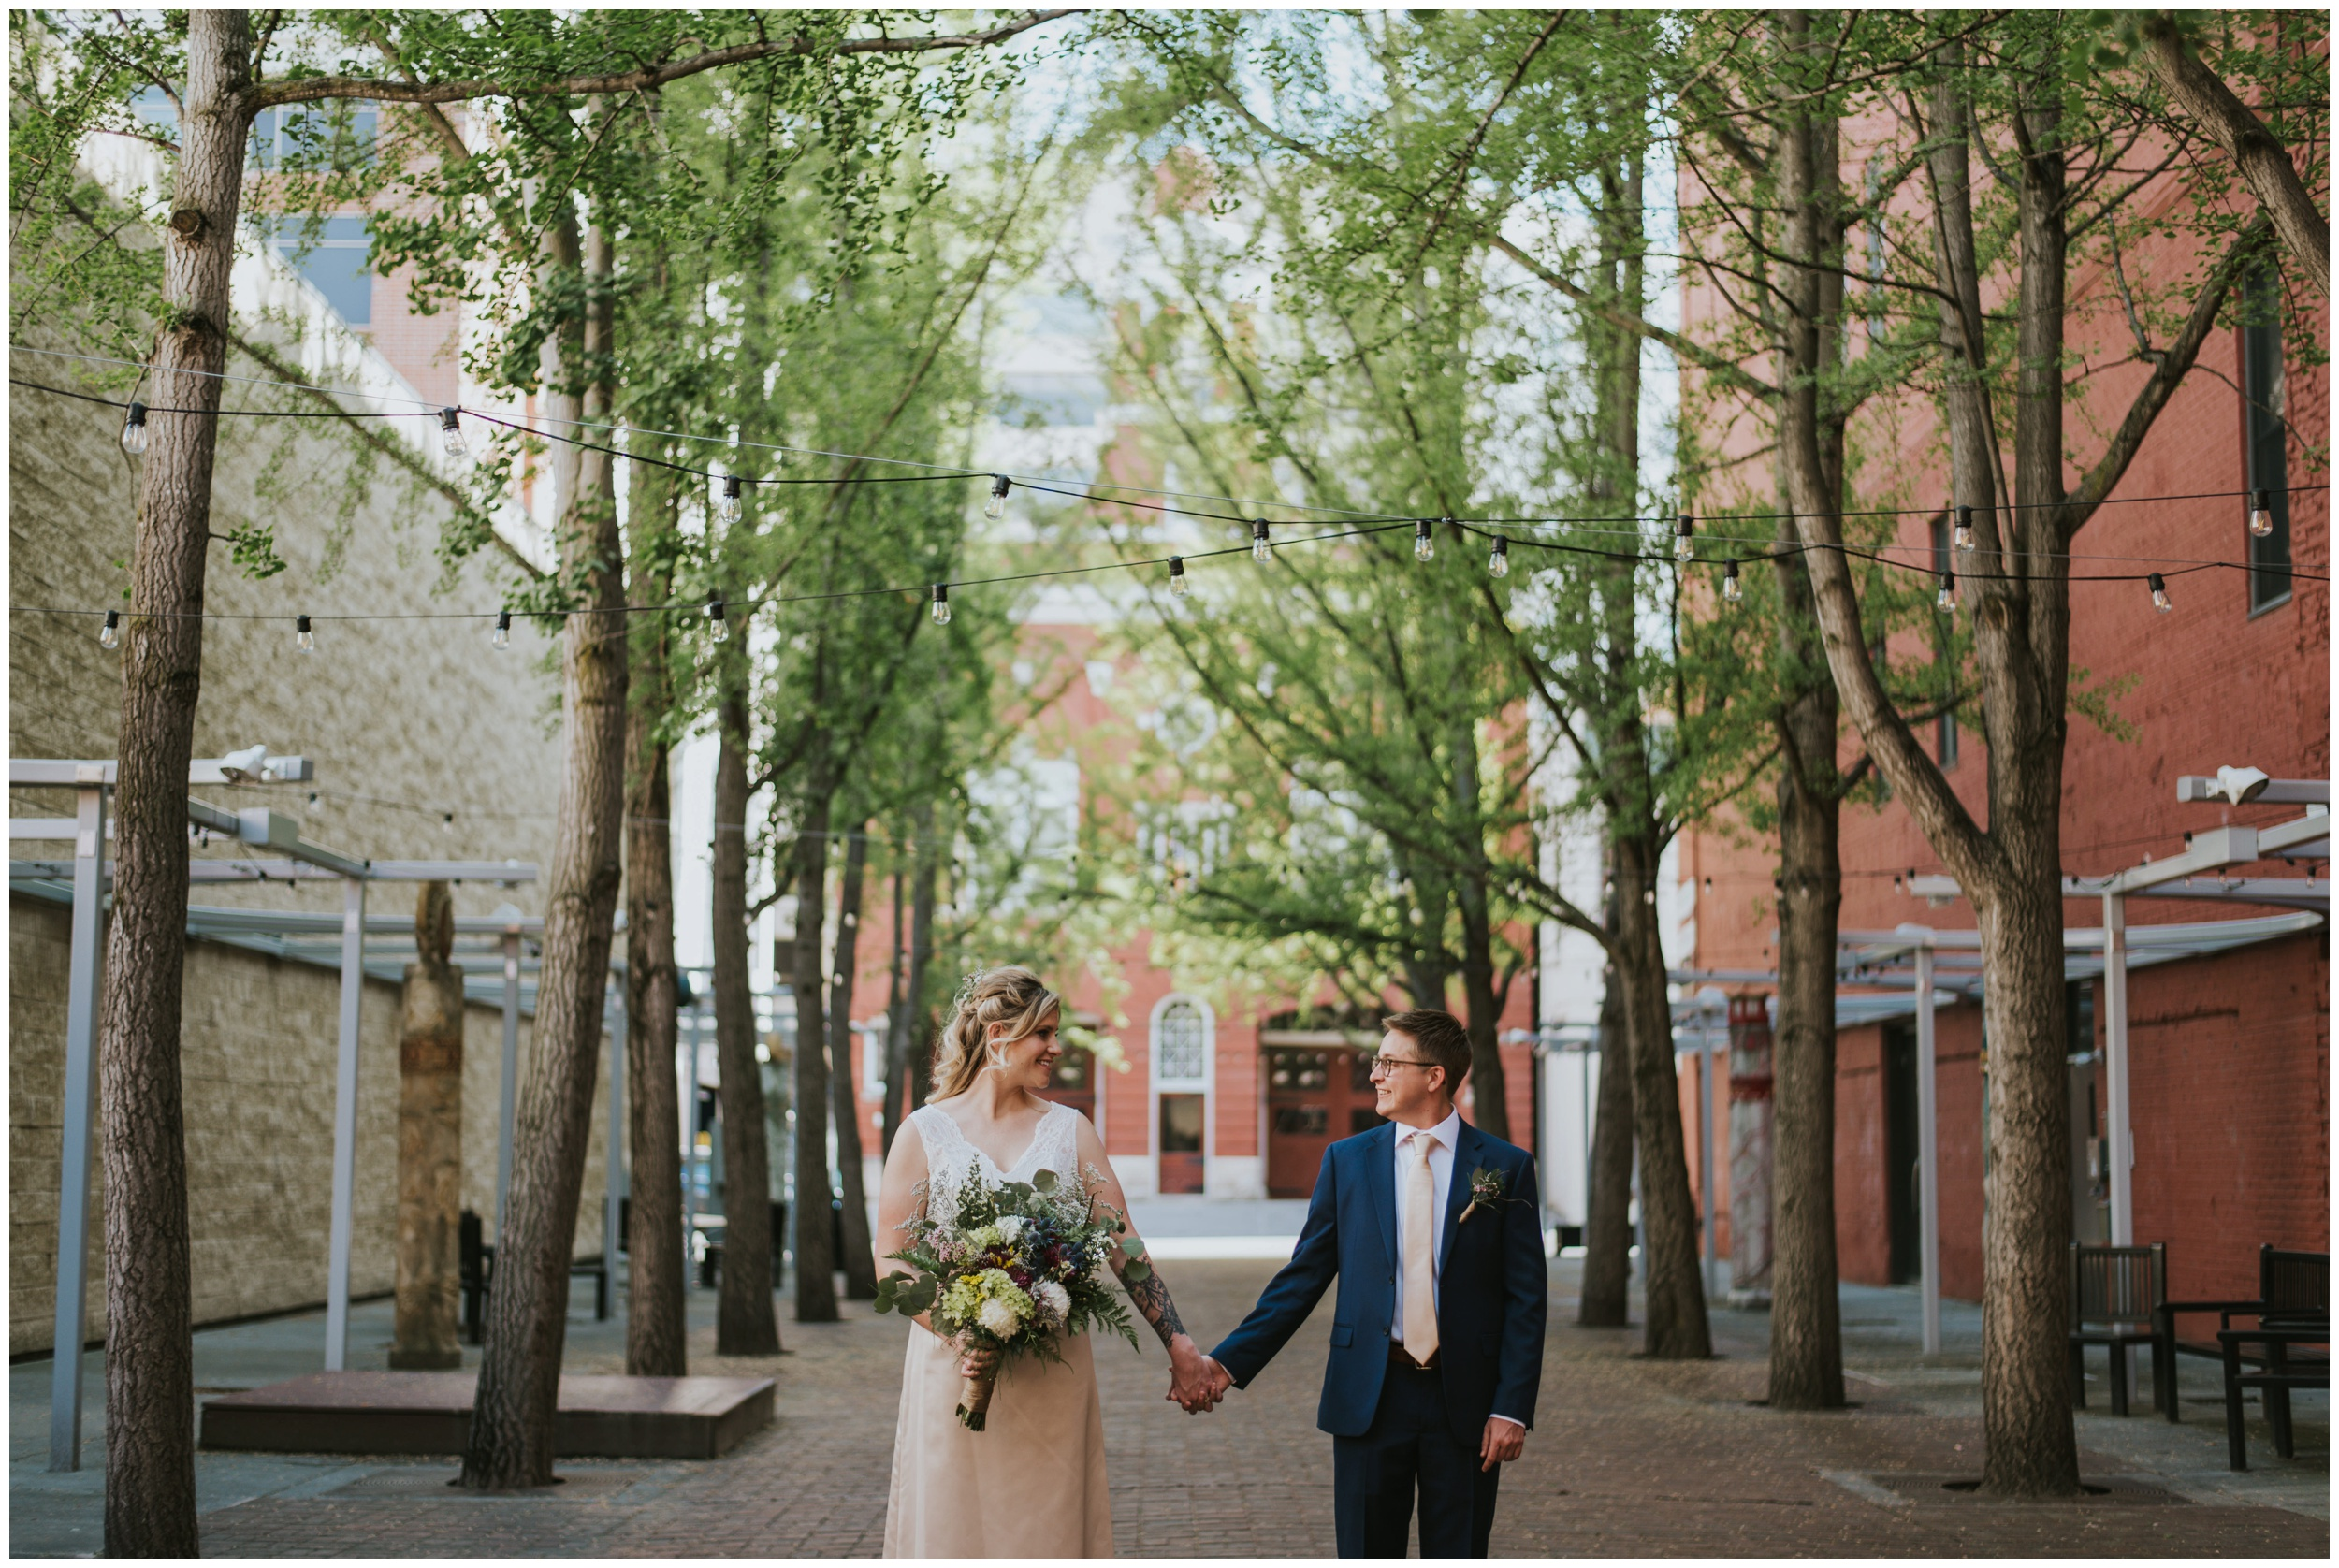 Downtown Roanoke, Century Plaza Wedding Photographer | www.riversandroadsphotography.com